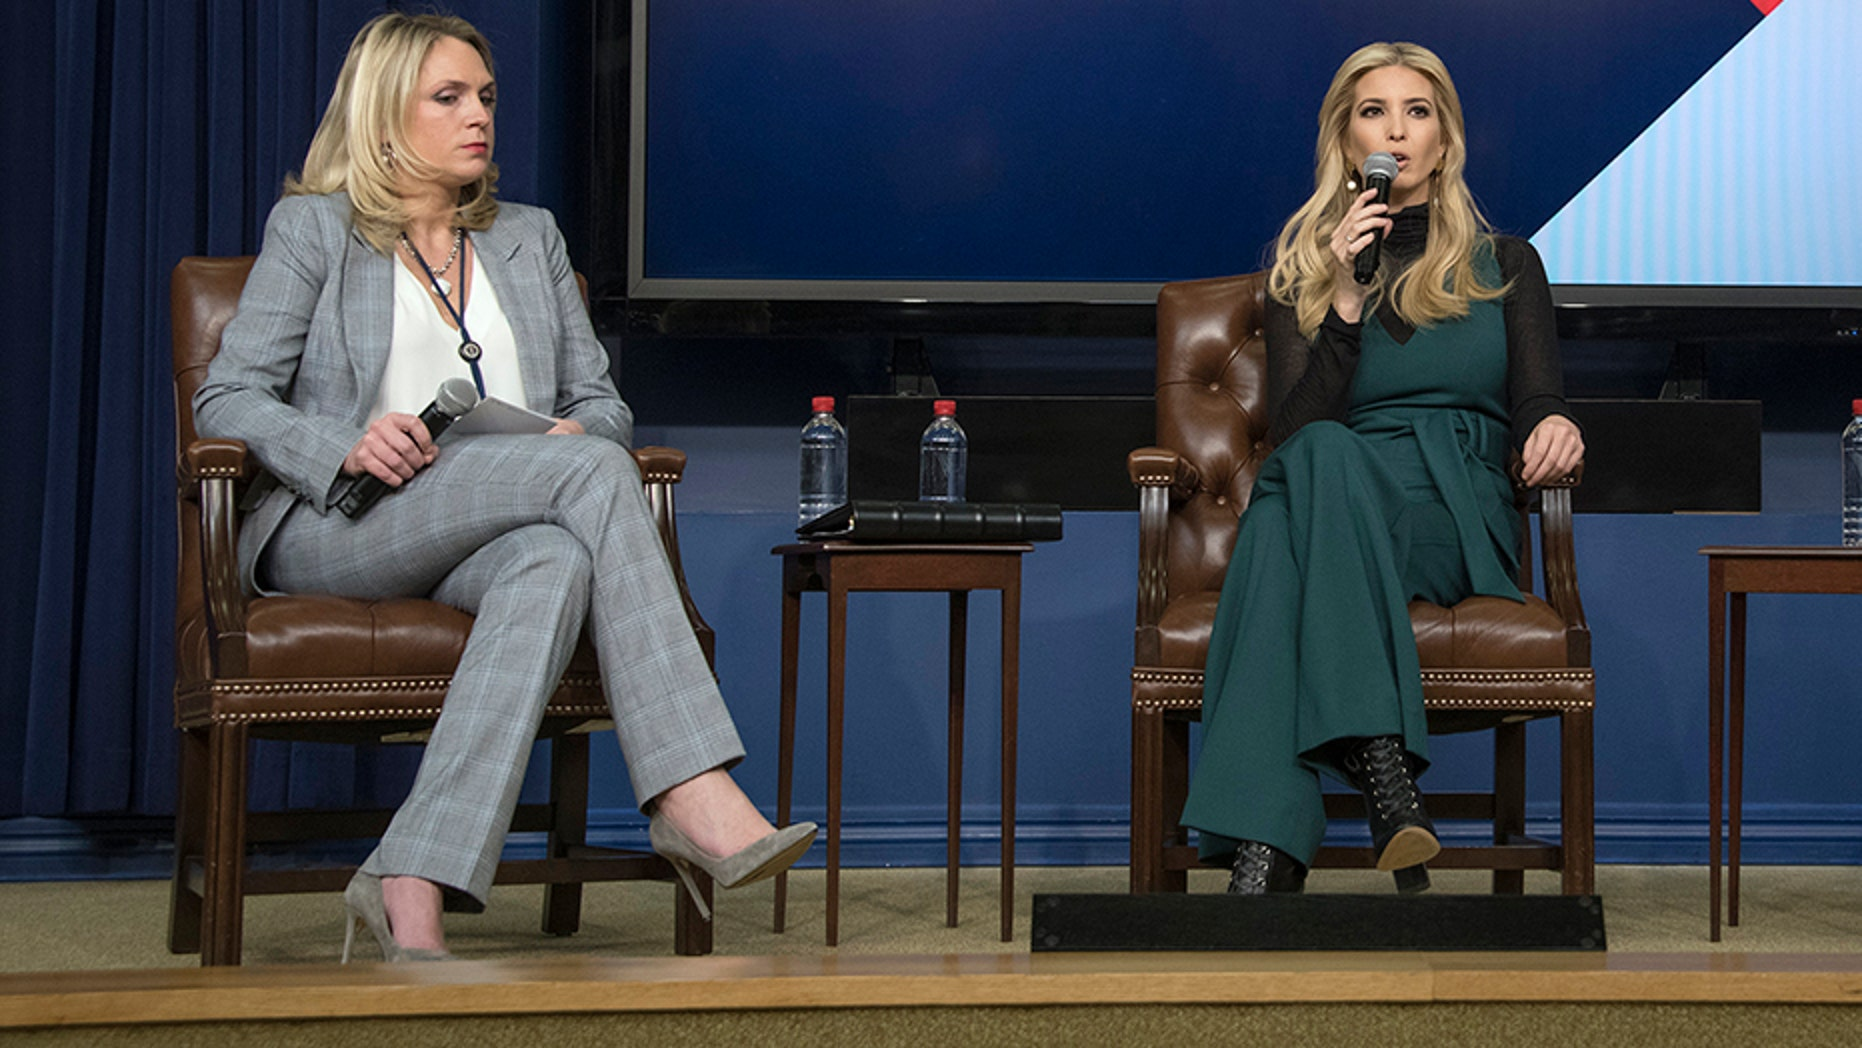 Kelly Sadler, left, participates in a panel with Ivanka Trump at the White House in March of this year.